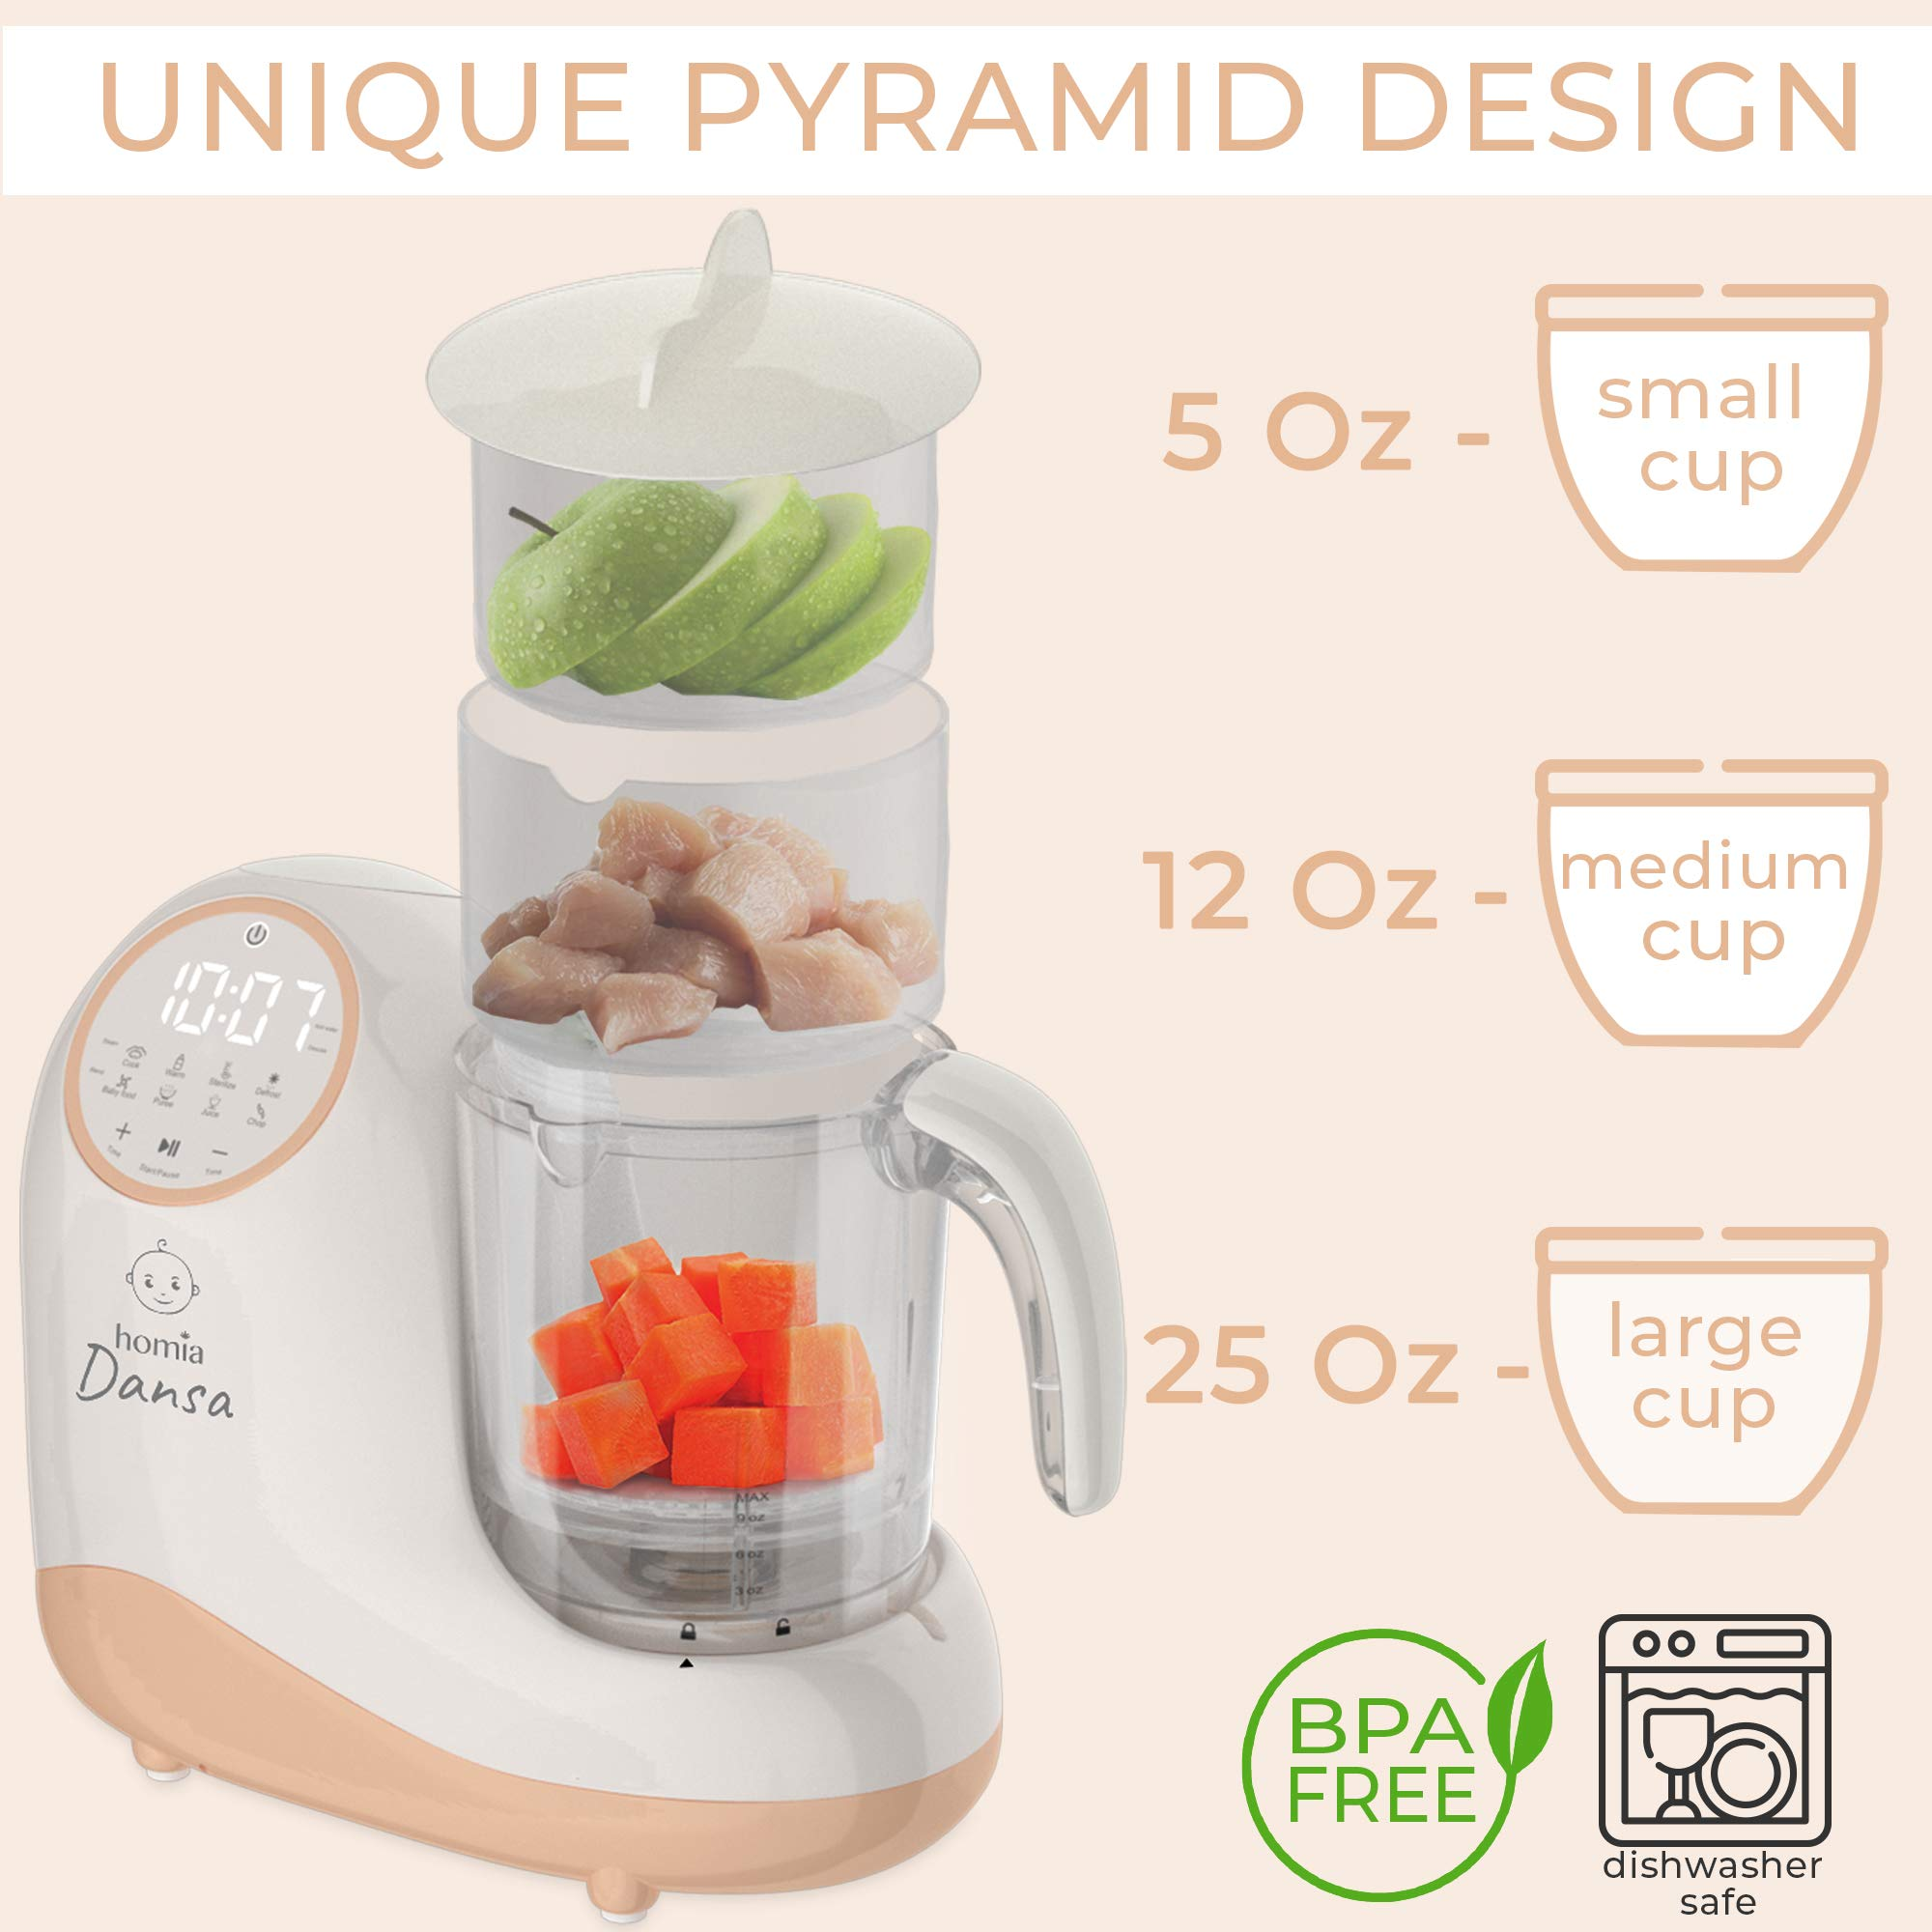 Baby Food Maker Chopper Grinder - Mills and Steamer 8 in 1 Processor for Toddlers - Steam, Blend, Chop, Disinfect, Clean, 20 Oz Tritan Stirring Cup, Touch Control Panel, Auto Shut-Off, 110V Only by homia (Image #4)